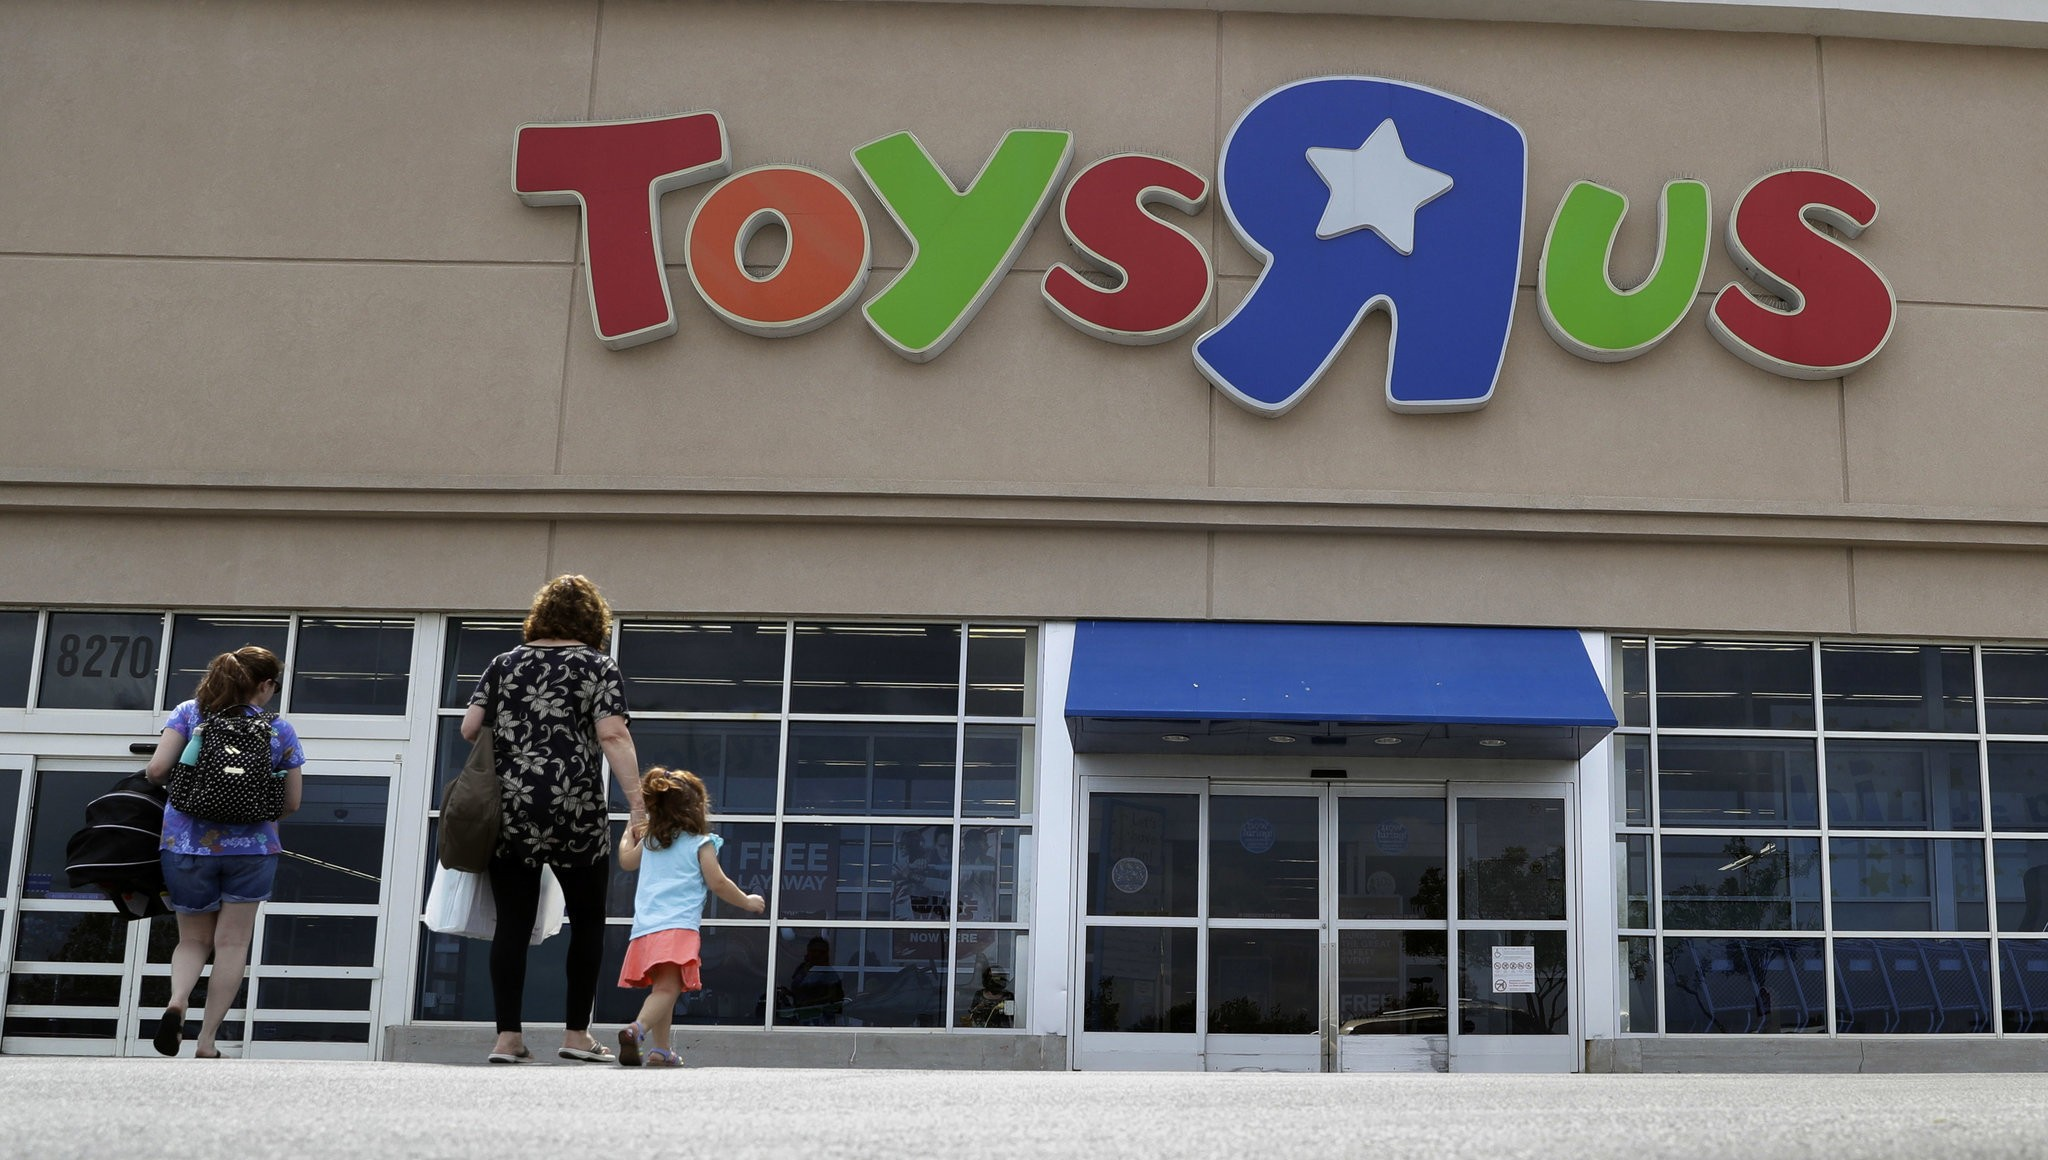 Toys R Us To Close 6 Massachusetts Stores Including Holyoke Mall Babies R Us As Part Of Bankruptcy Restructuring Masslive Com